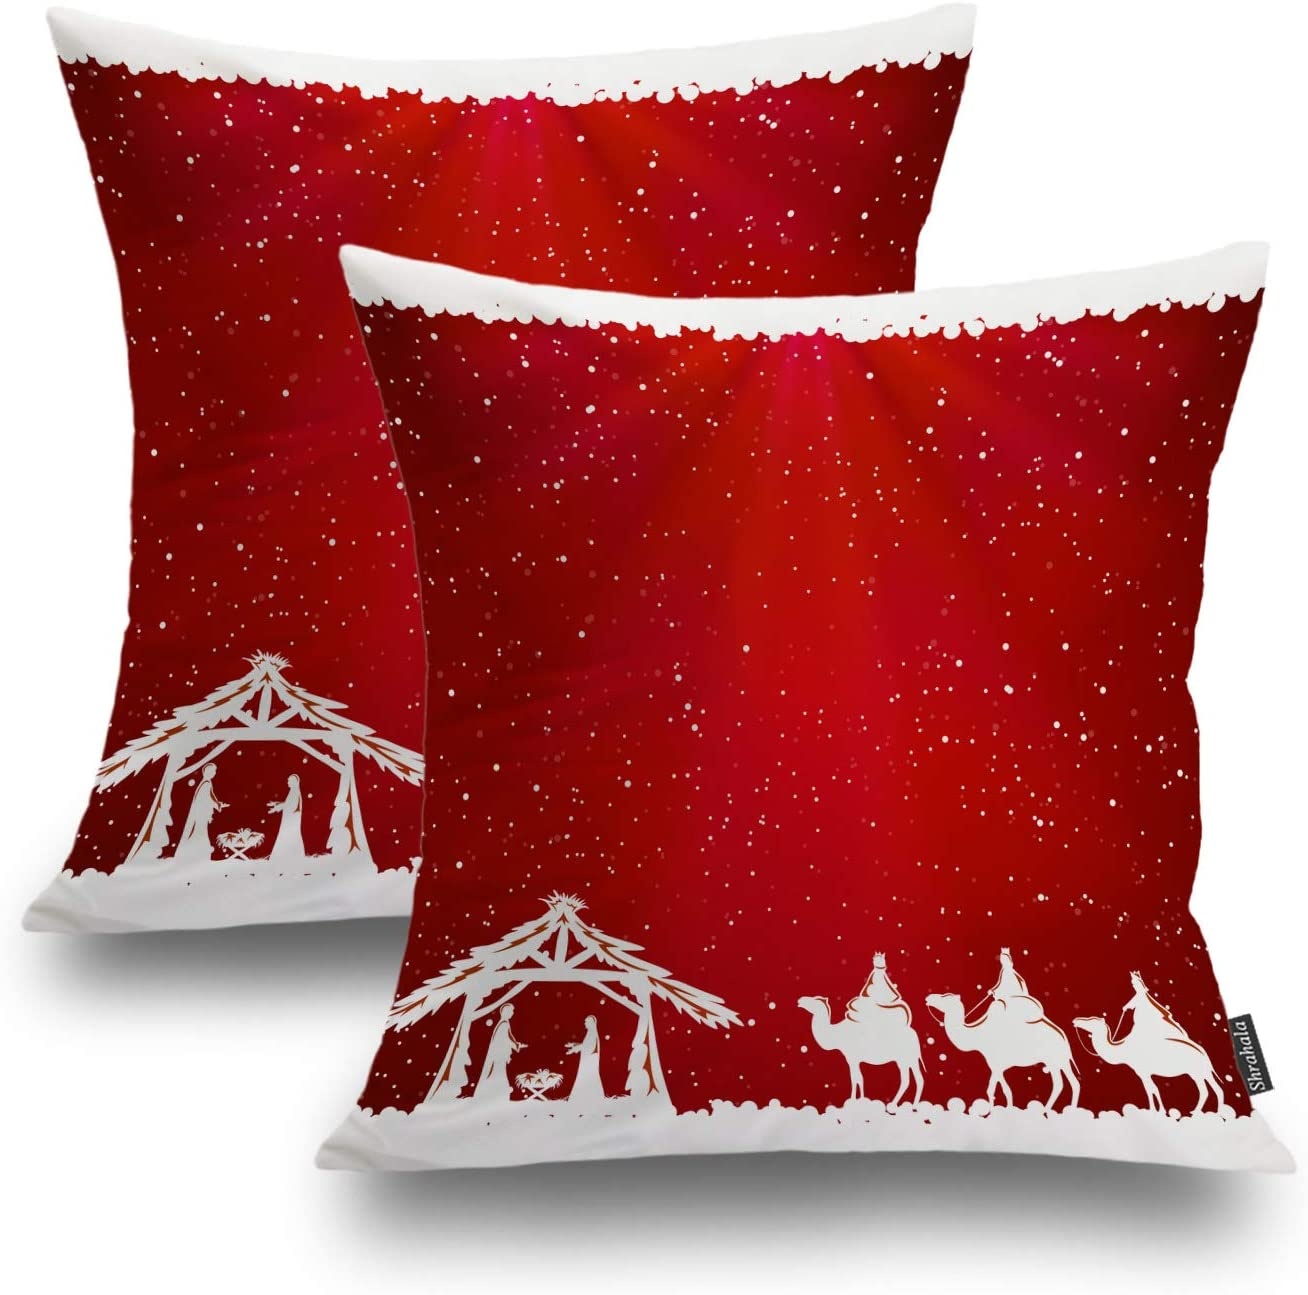 Shrahala Christmas Pillow Covers, Decorative Pillowcases Christian Christmas Nativity Jesus Religious Cushion Case for Sofa Bedroom Car Throw Pillow Covers Square 18 x 18 Inches Red, Set of 2